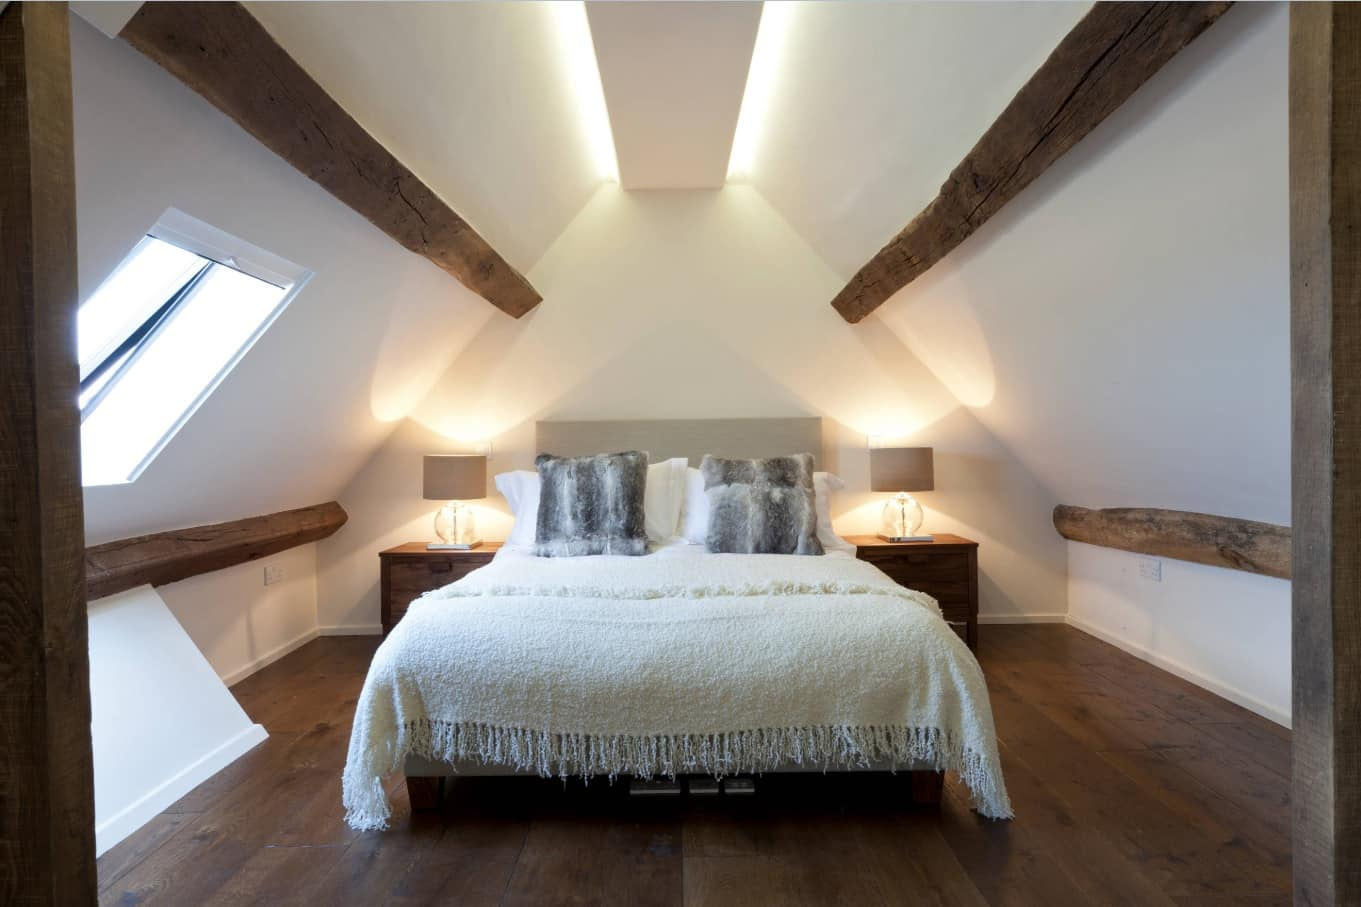 Tips To Get Your Guest Room Ready. Barn country style in the loft located white bedroom with wooden floor and laquered ceiling beams